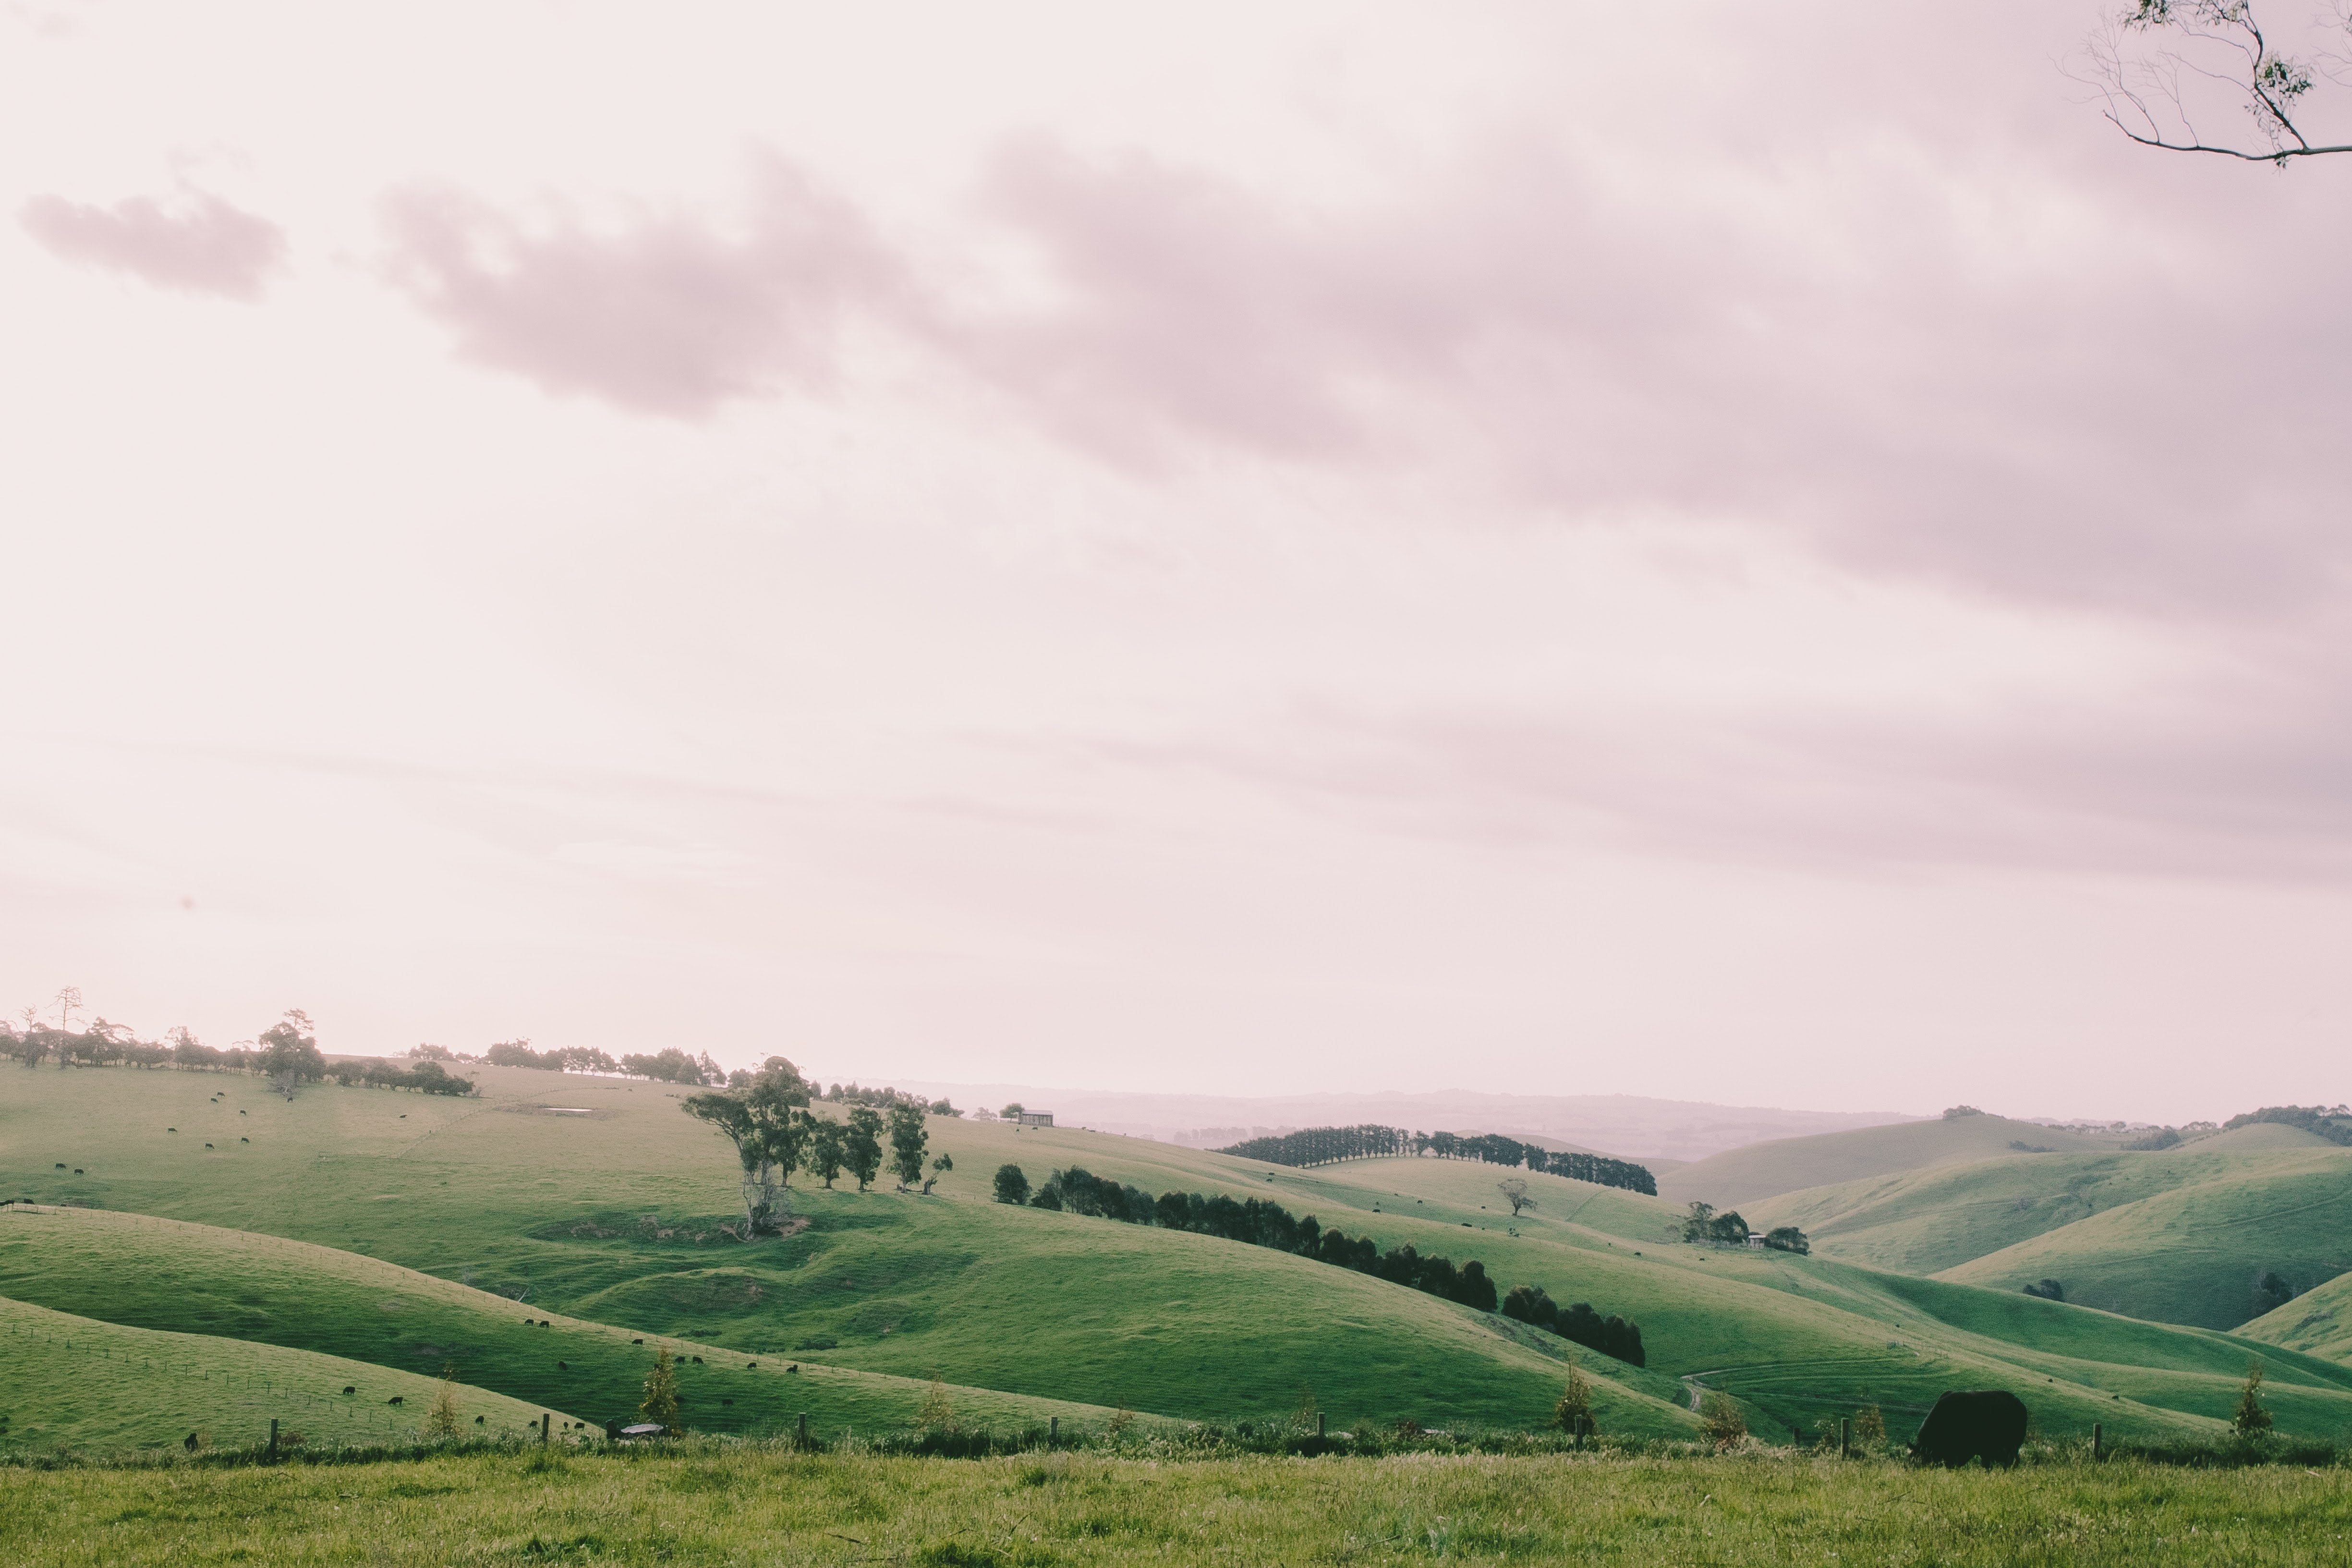 green hill and field under white clouds during daytime